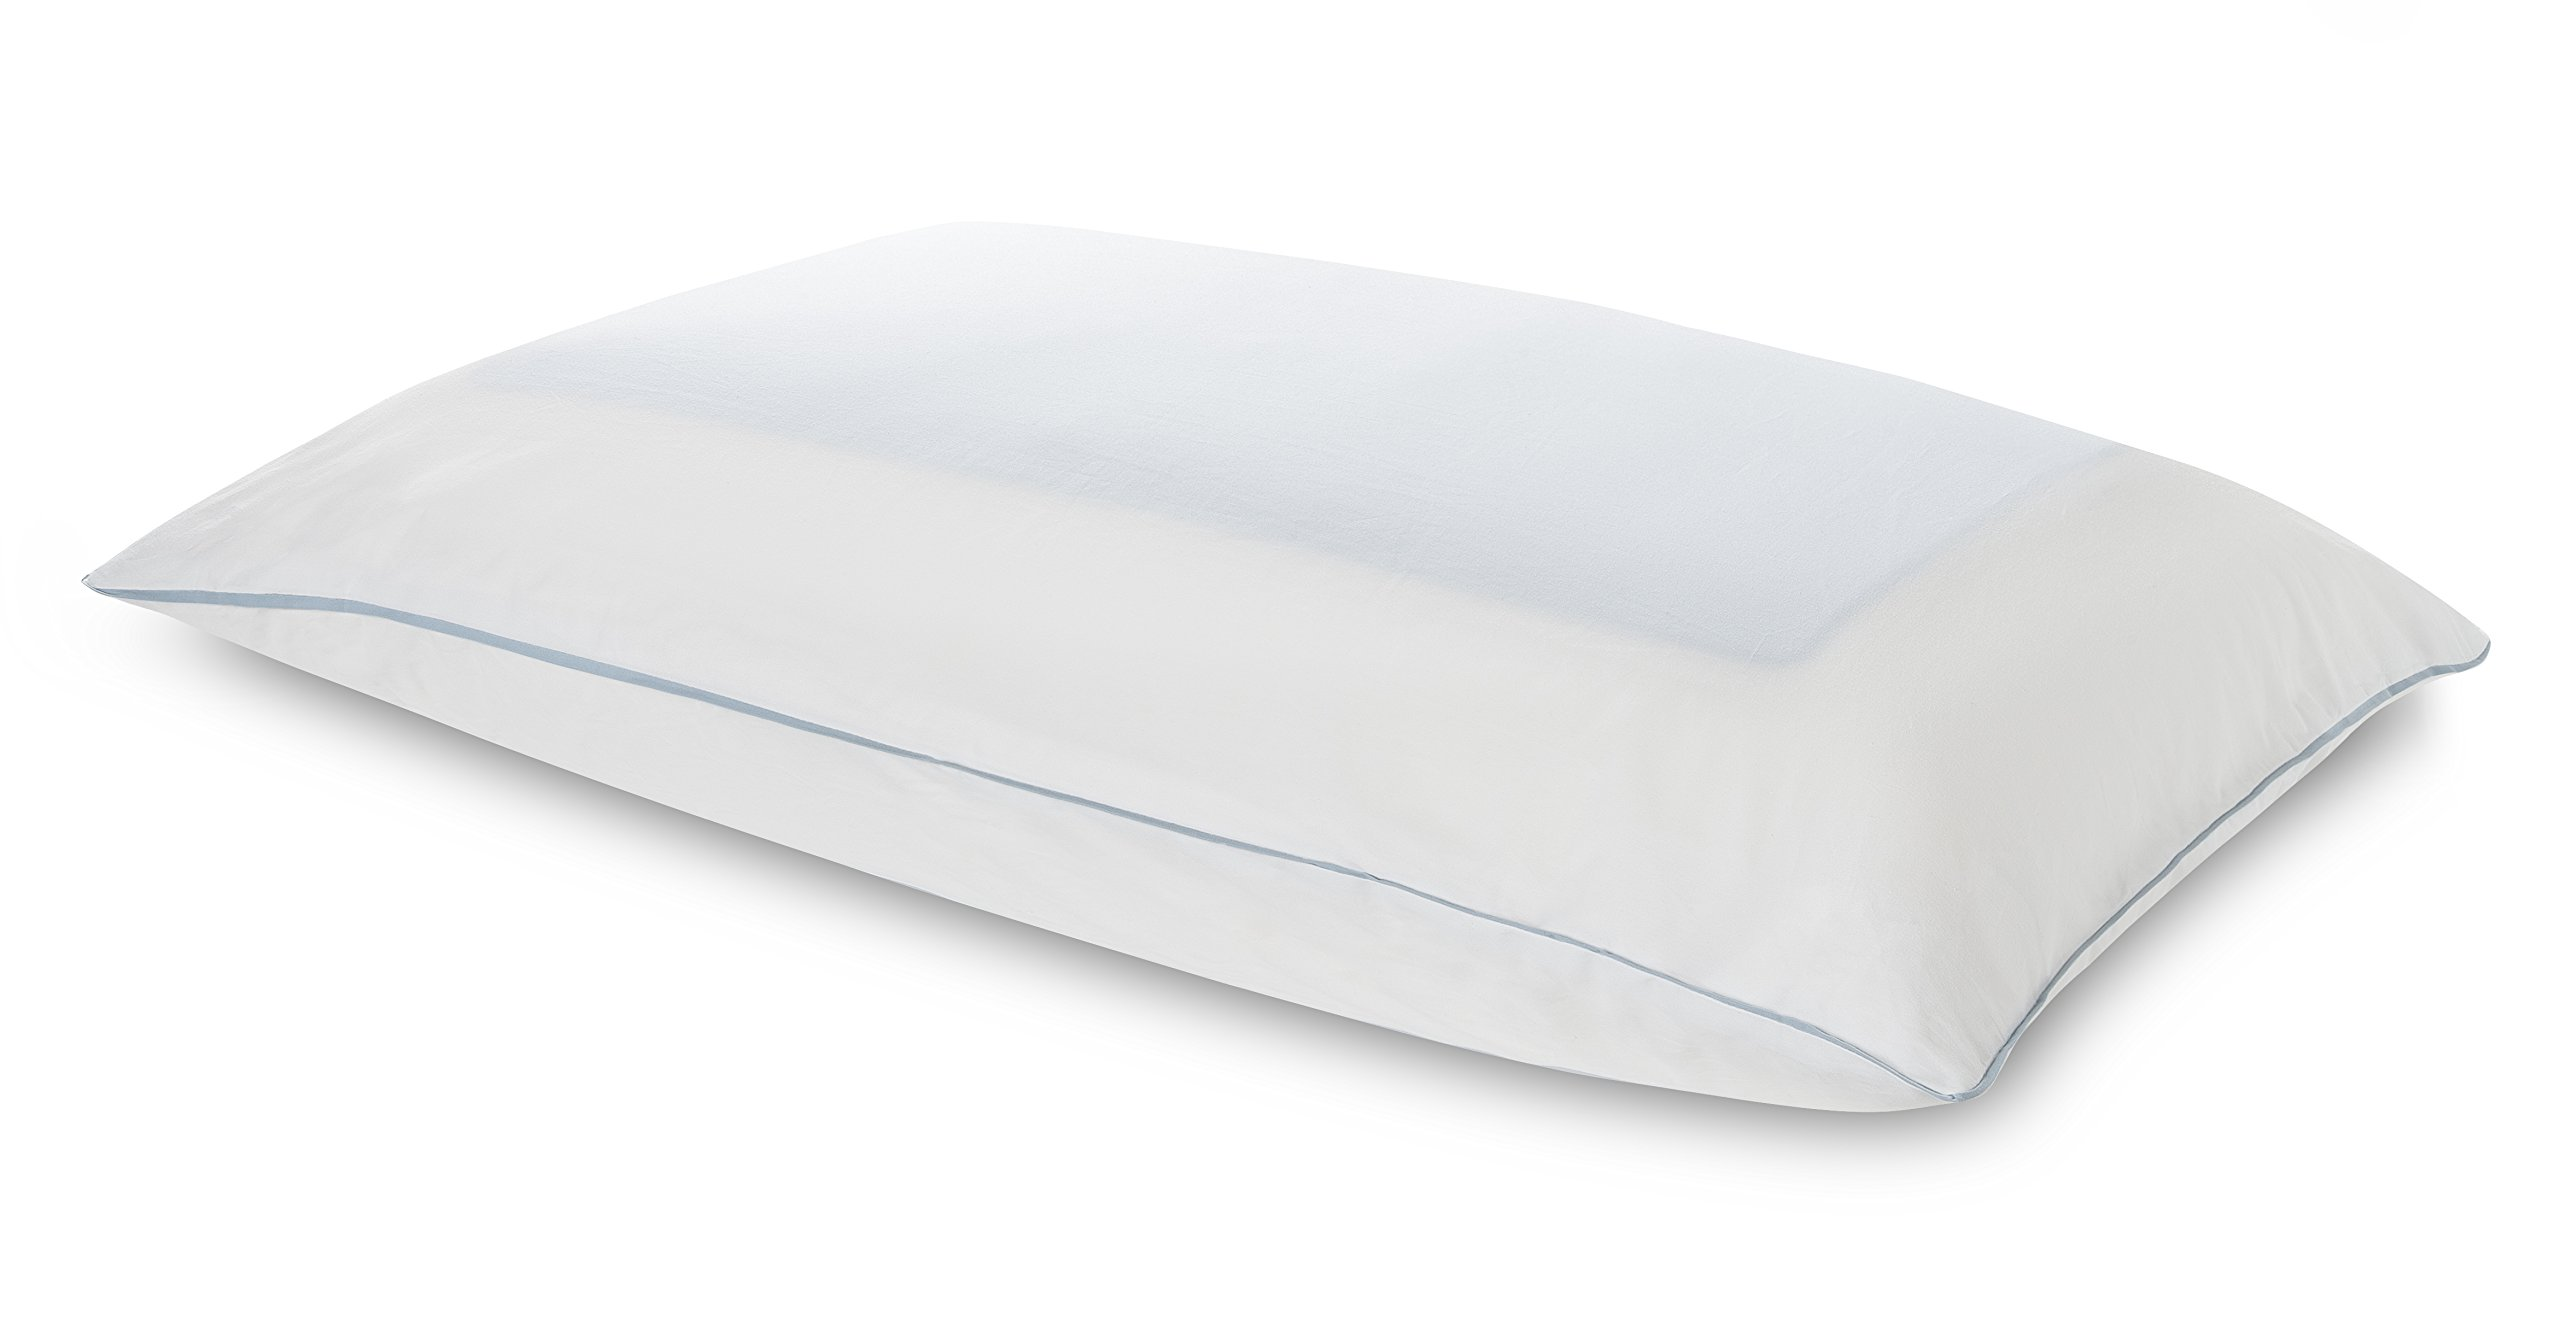 TEMPUR-Cloud Breeze Dual Cooling Pillow, King by Tempur-Pedic